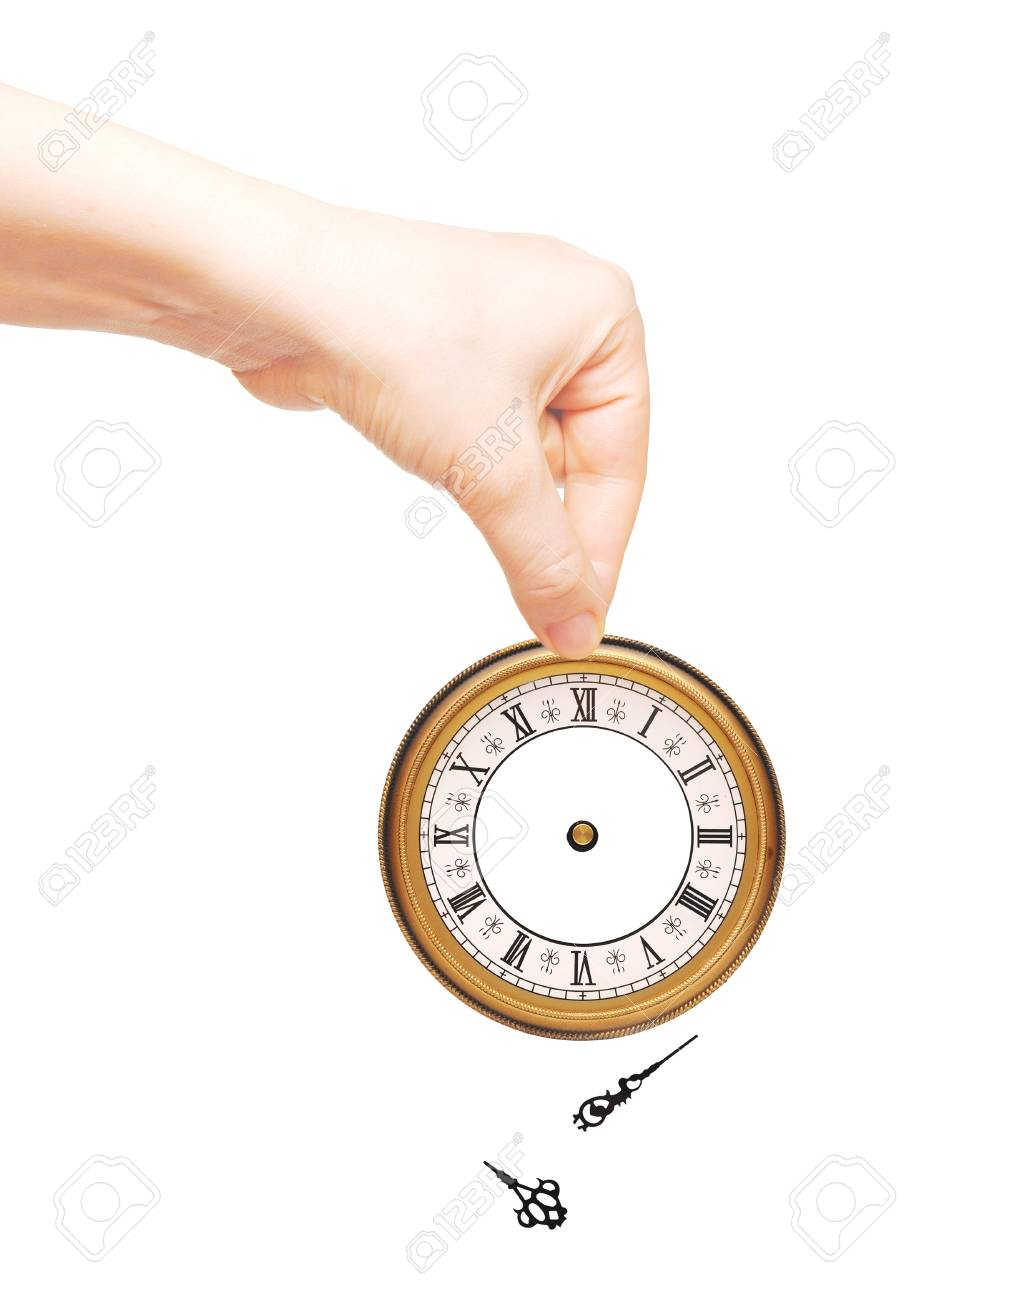 Hand with clock isolated on white background Stock Photo - 9597548